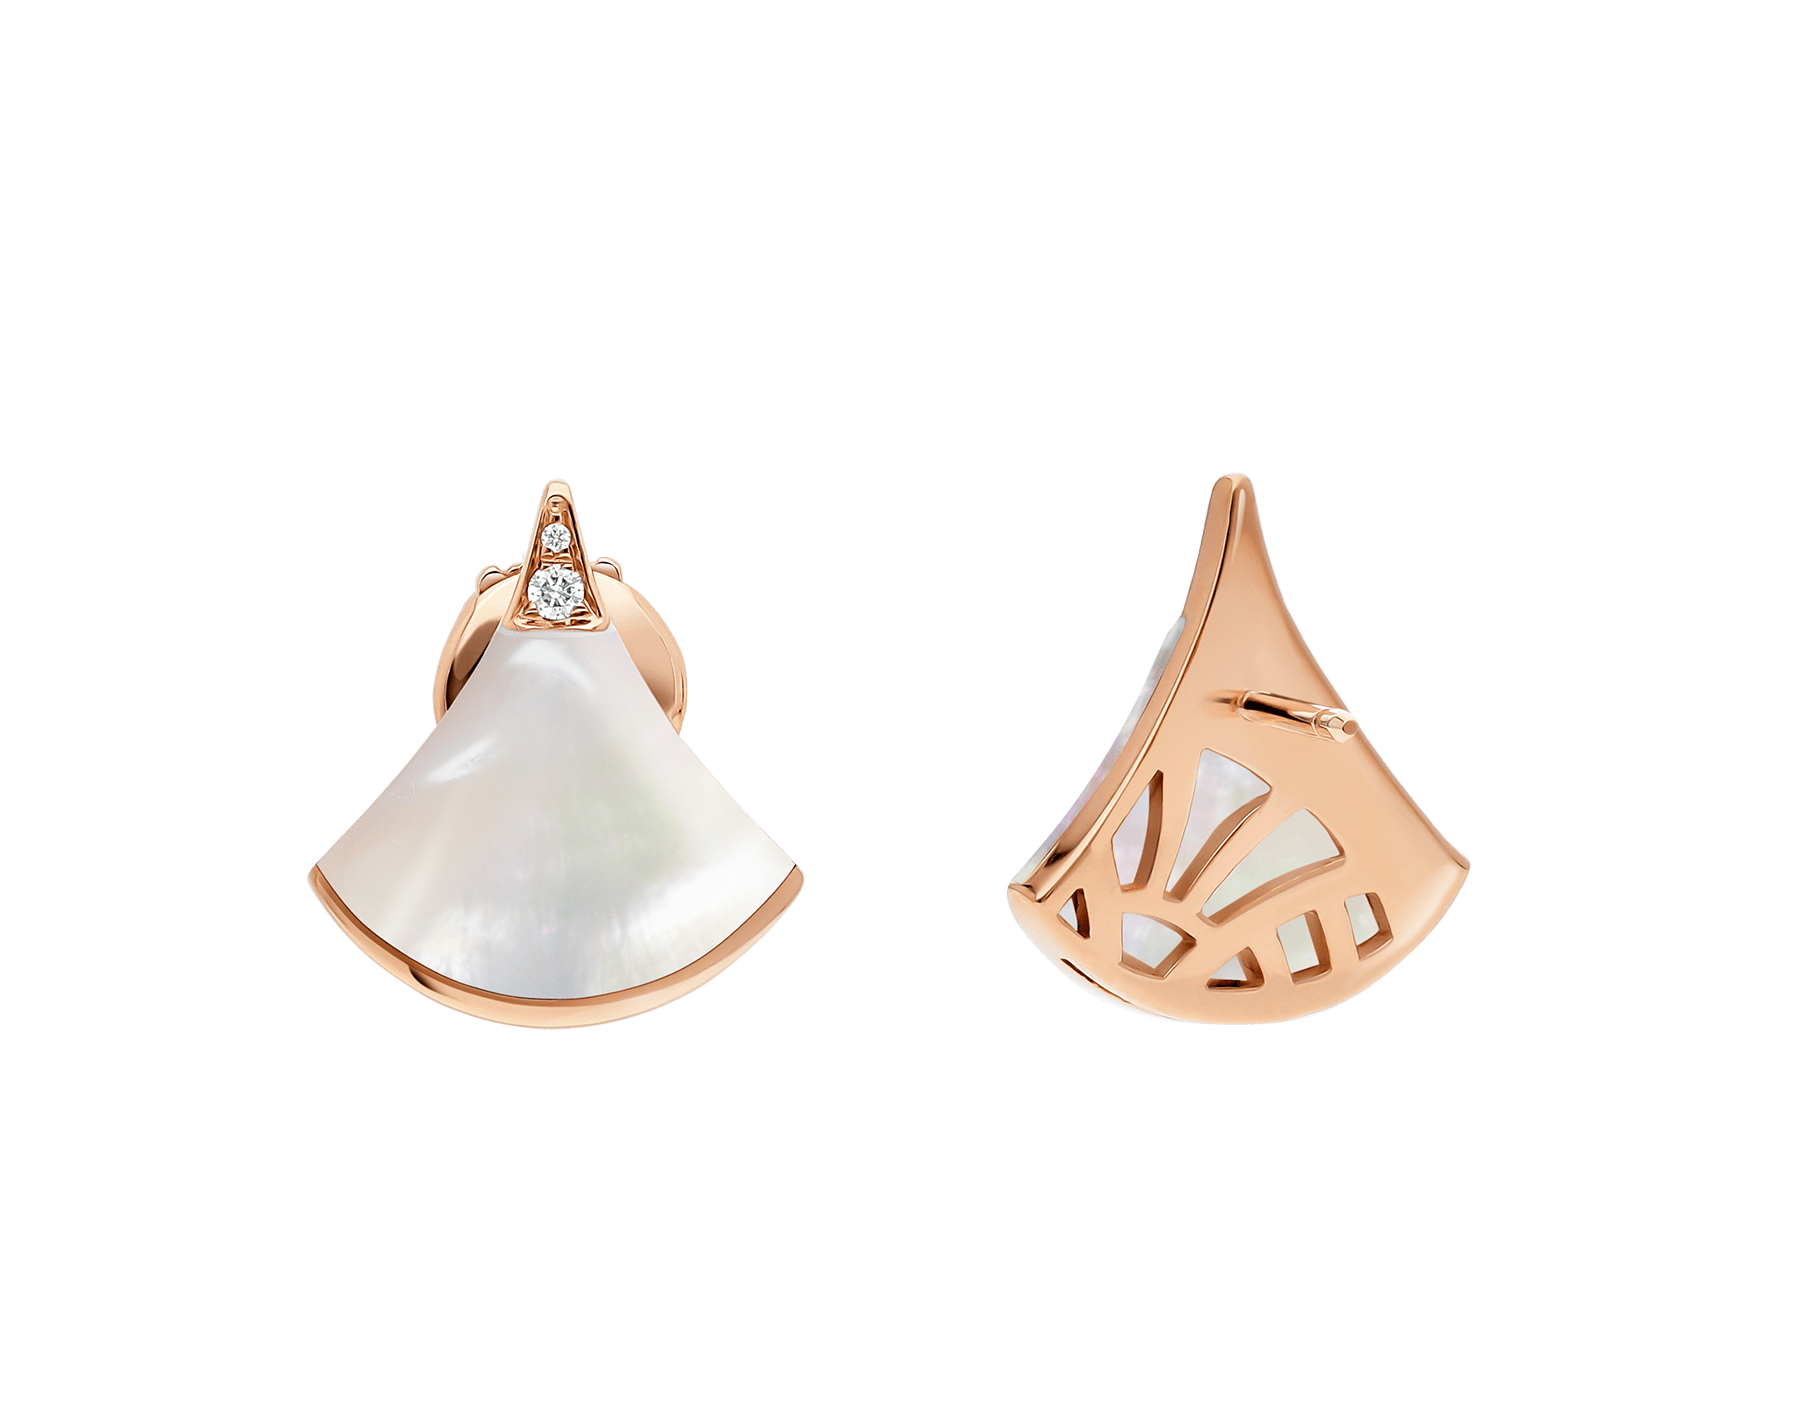 DIVAS' DREAM earrings in 18 kt rose gold, set with mother-of-pearl and pavé diamonds. 352600 image 3